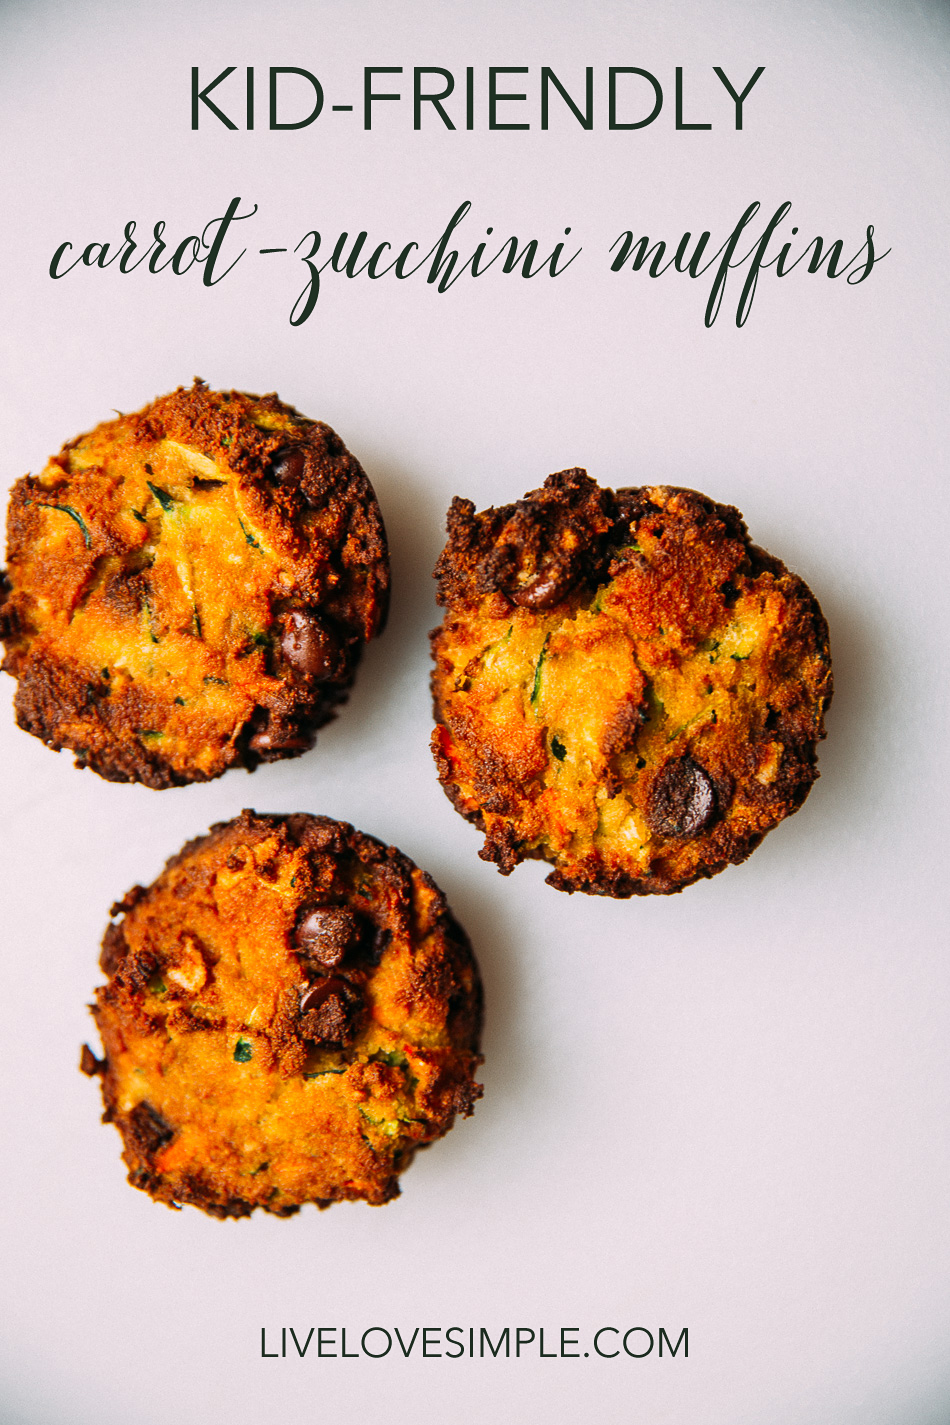 Kid-Friendly Carrot-Zucchini Muffins// livelovesimple.com